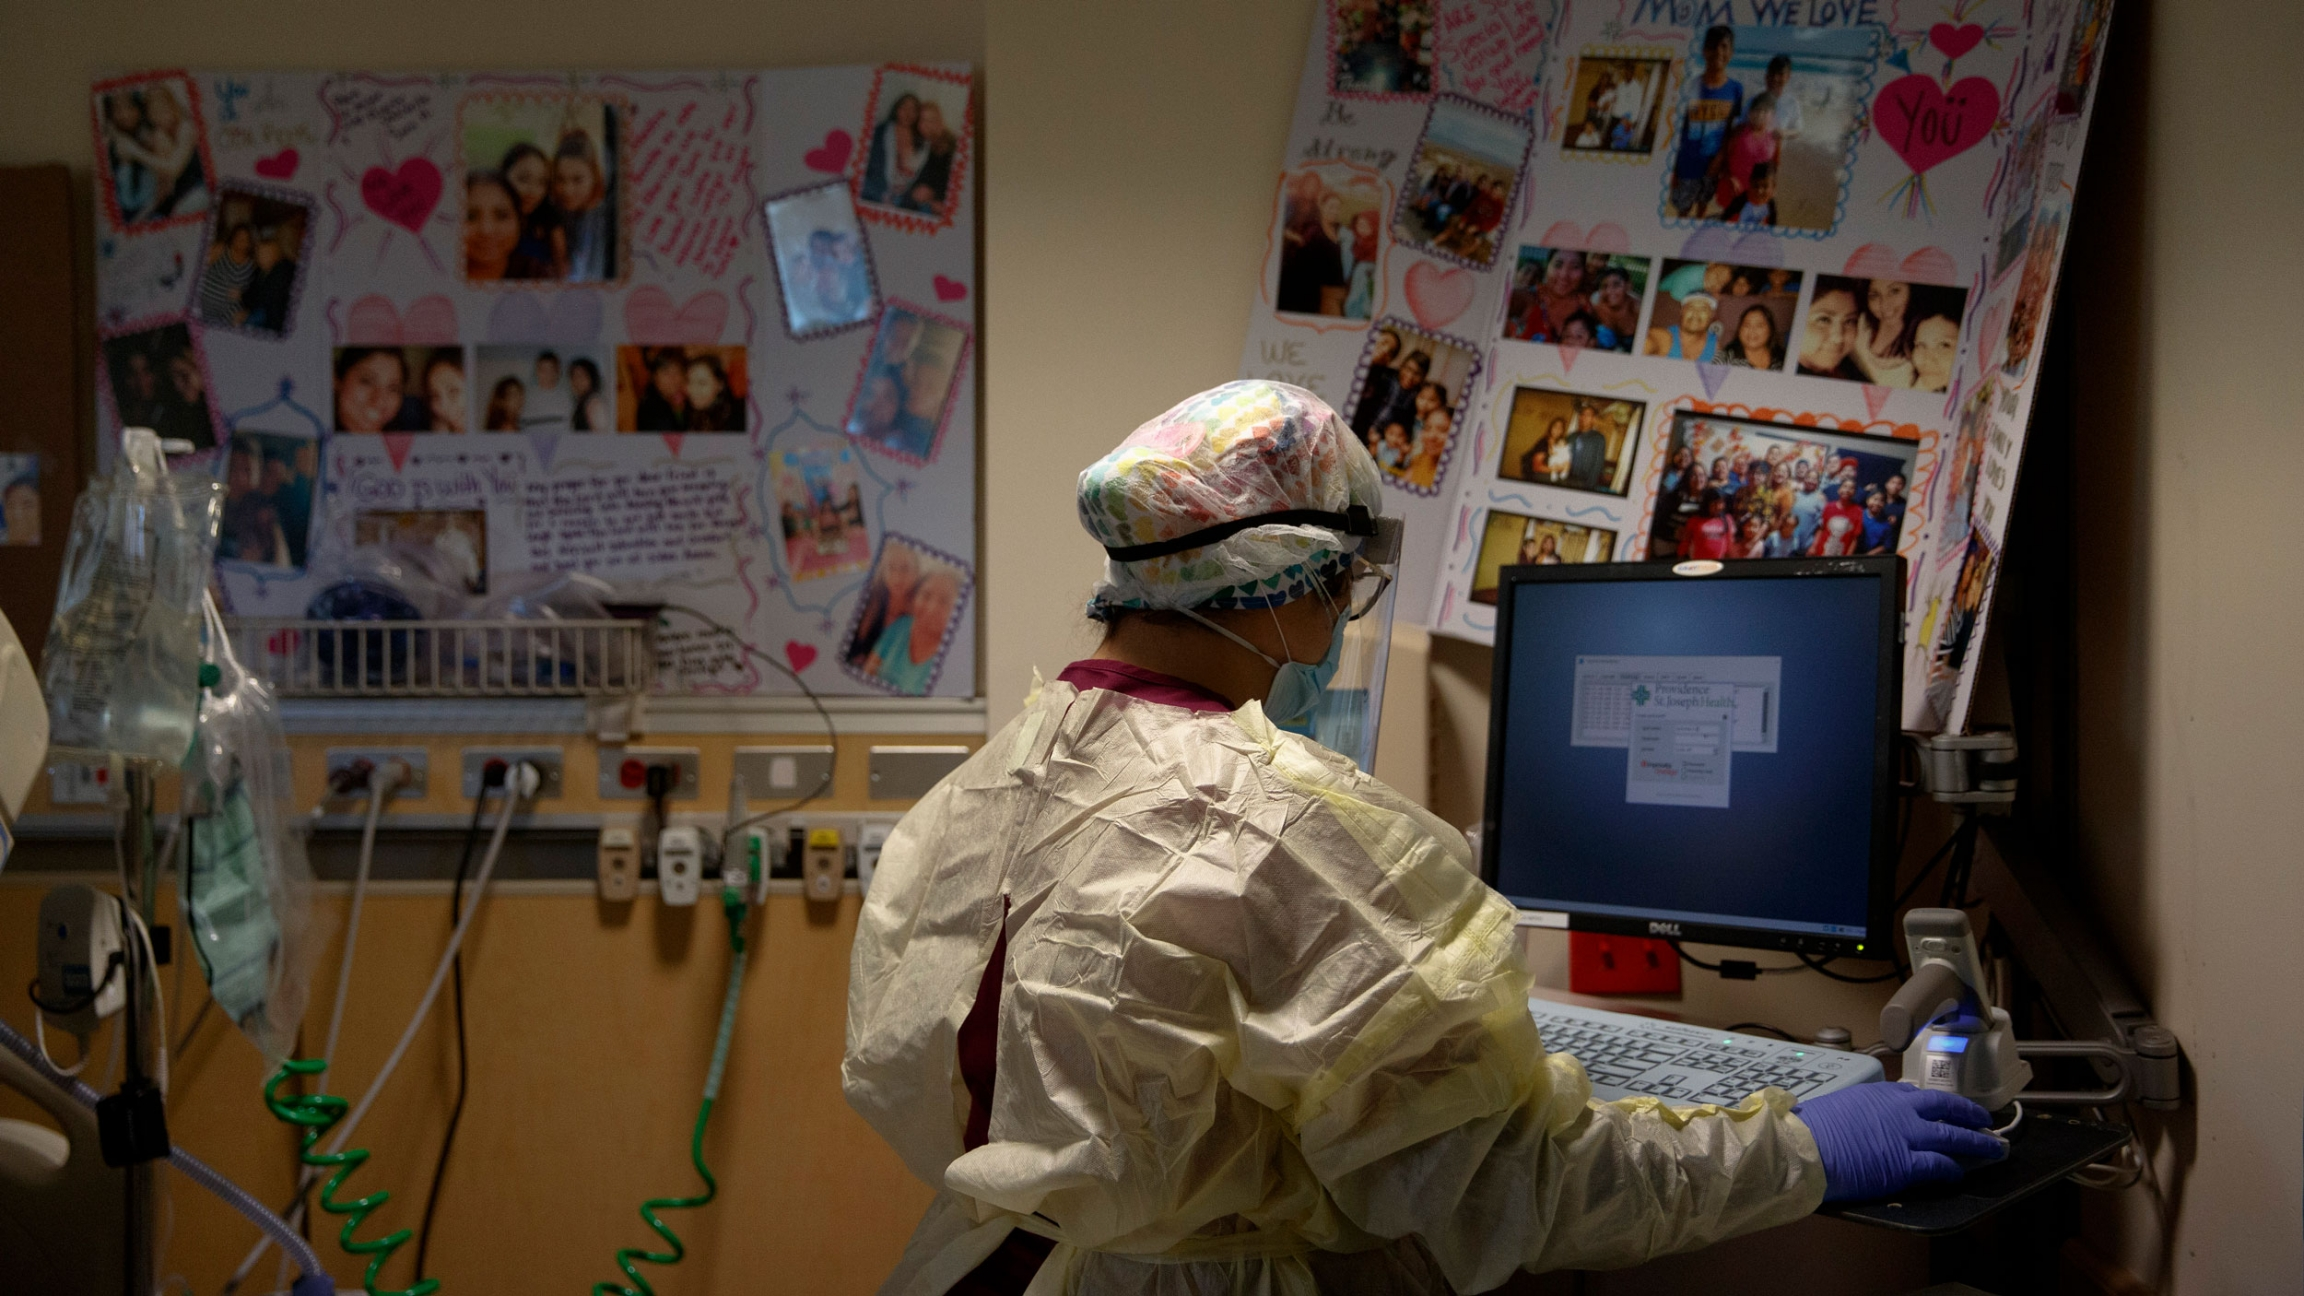 A woman is shown from behind, working on a computer and wearing a nursing cap and gown with get well soon cards on the wall.